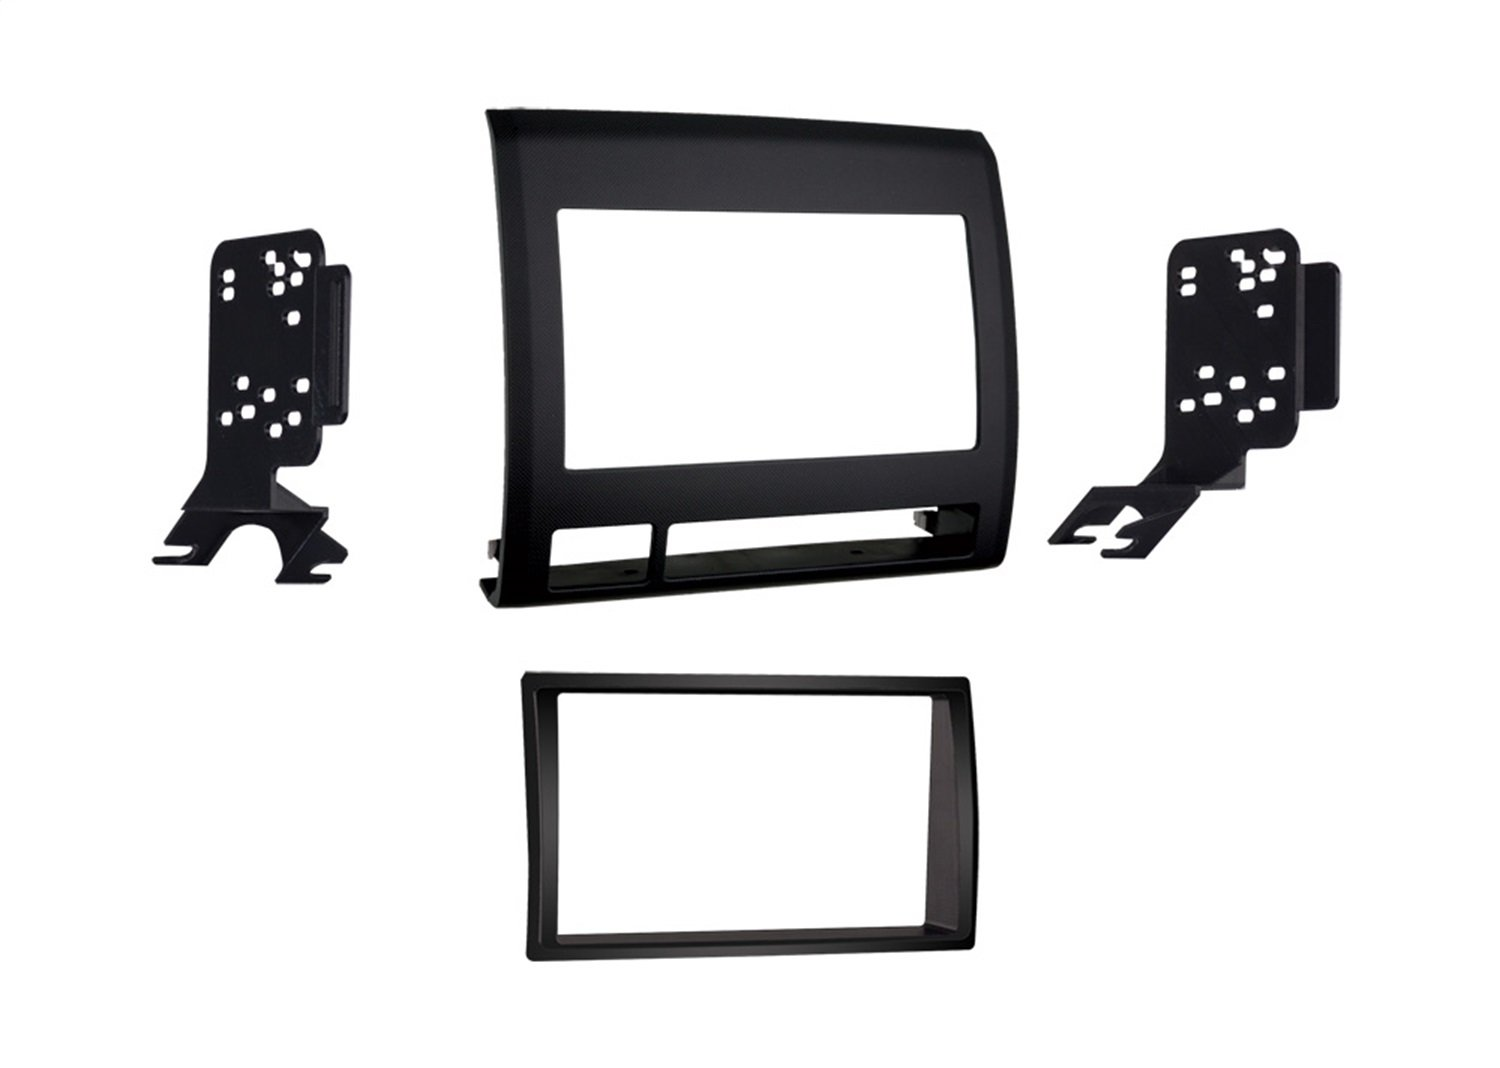 Metra 95 8214tb Double Din Dash Kit For Toyota Tacoma Mirror Wiring Harness 1987 Up 2005 2011 Vehicle Black Car Electronics